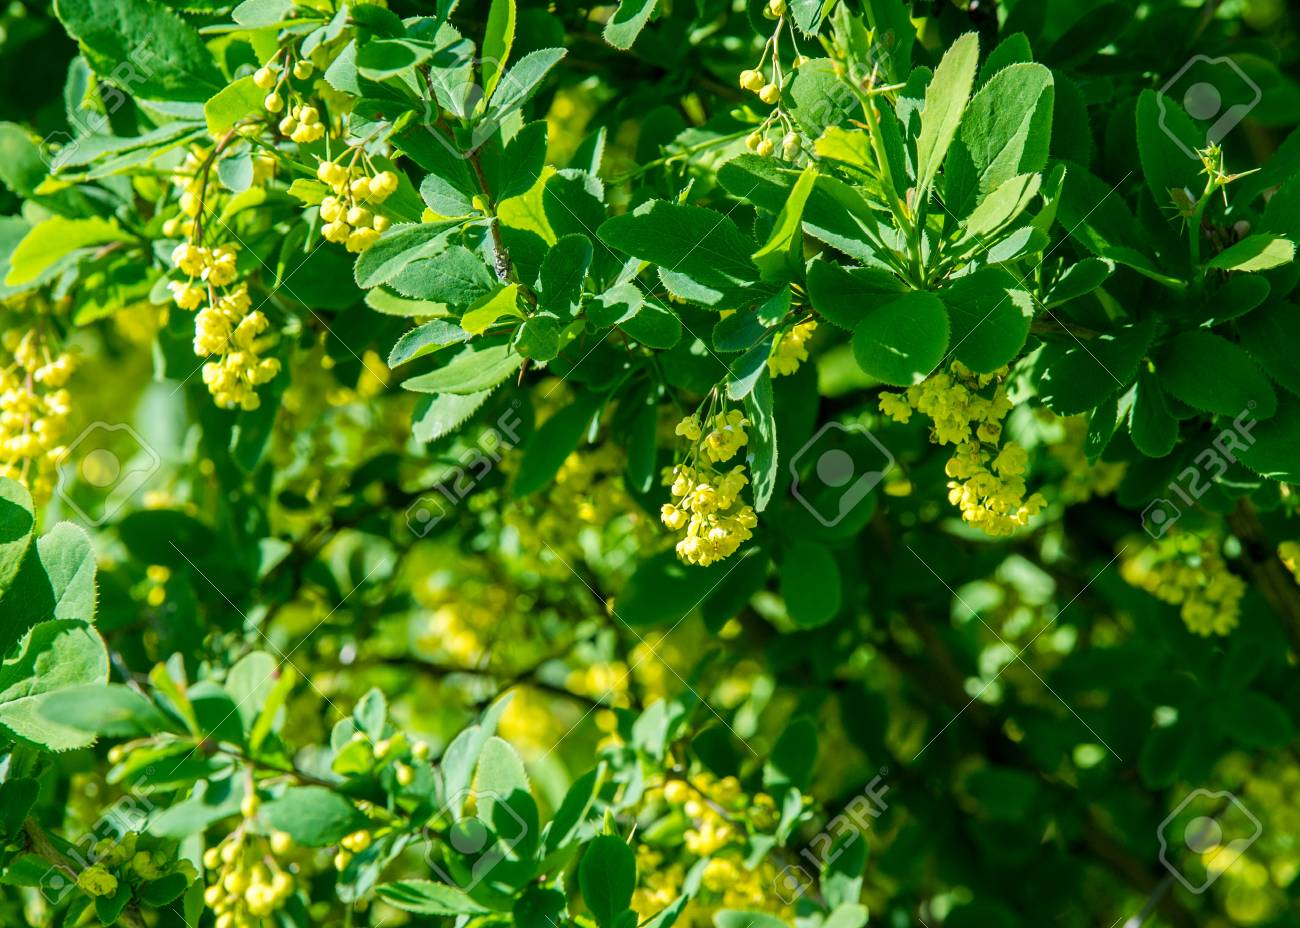 Flowers Barberry A Thorny Shrub That Bears Yellow Flowers And